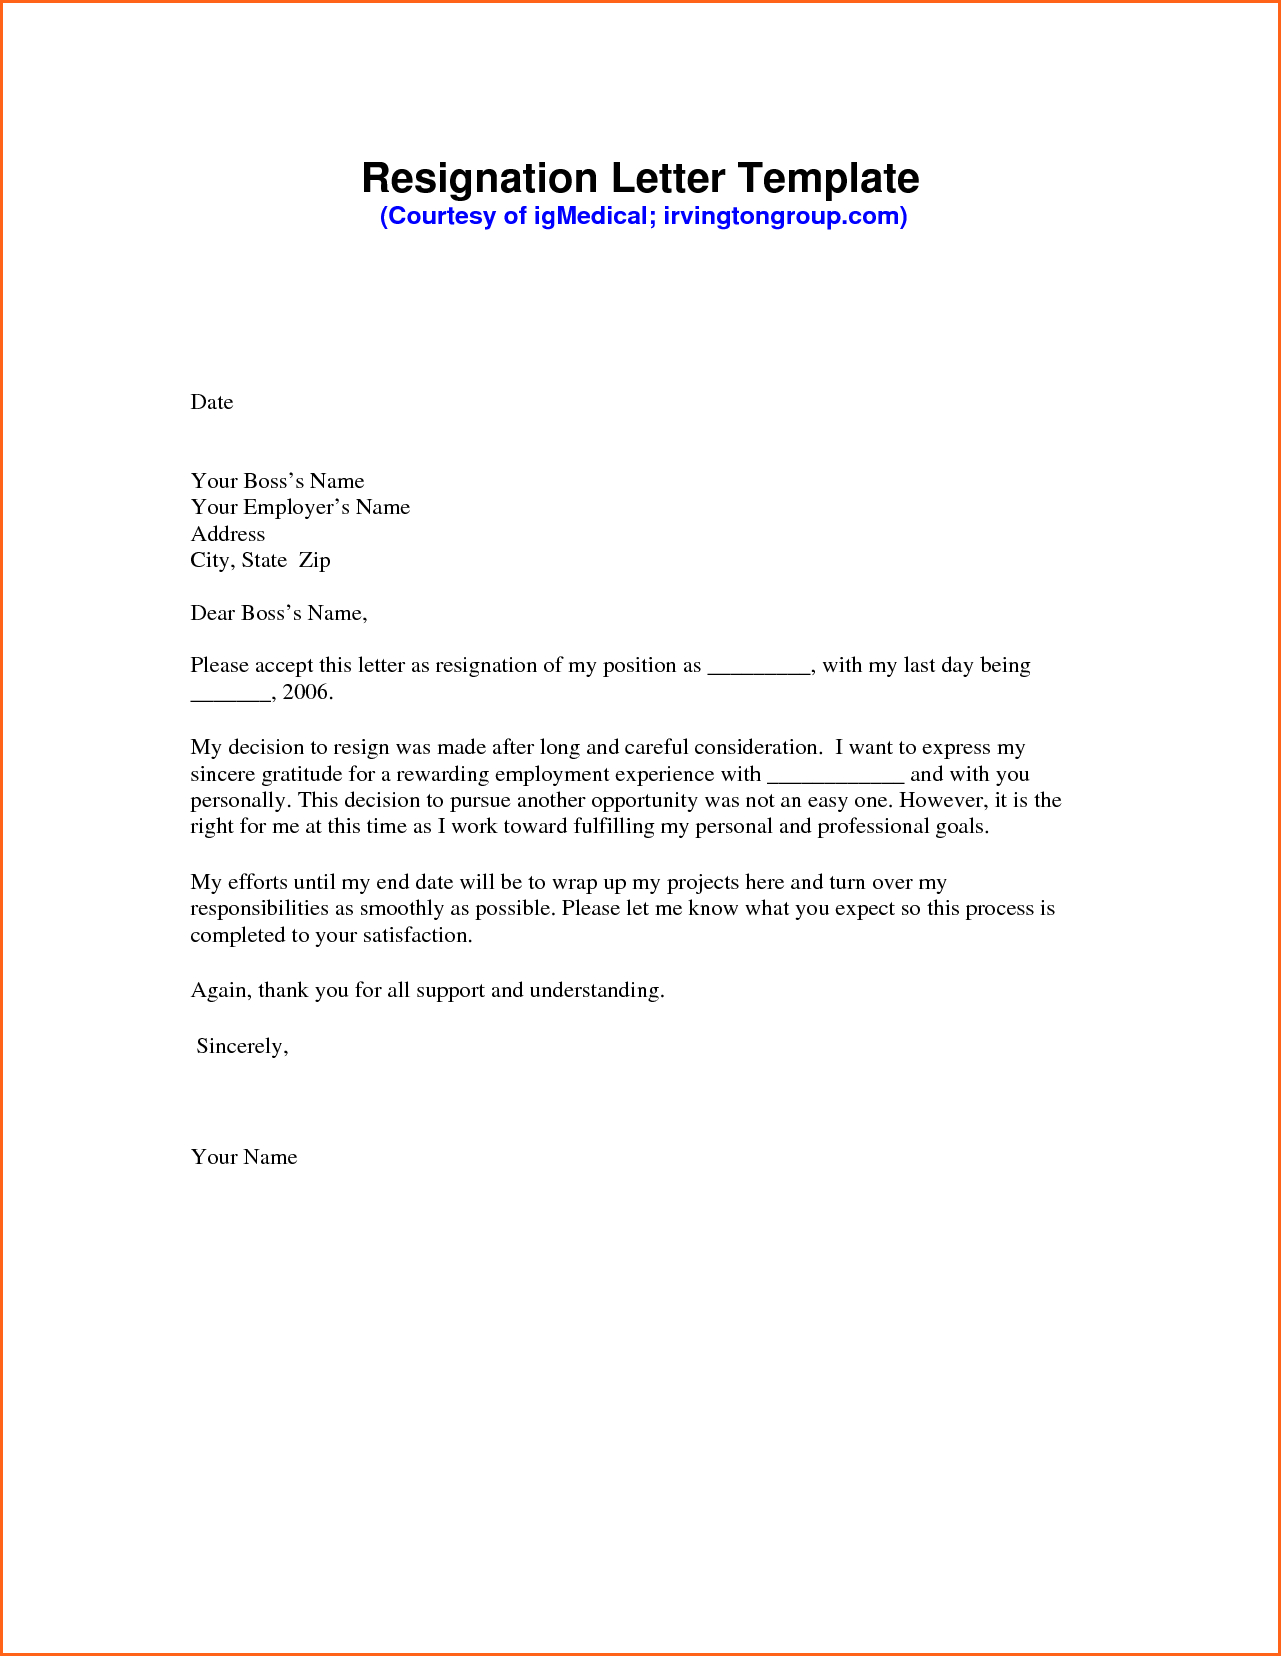 I Quit Letter Template - Resignation Letter Sample Pdf Mechanical Engineering Resume Template